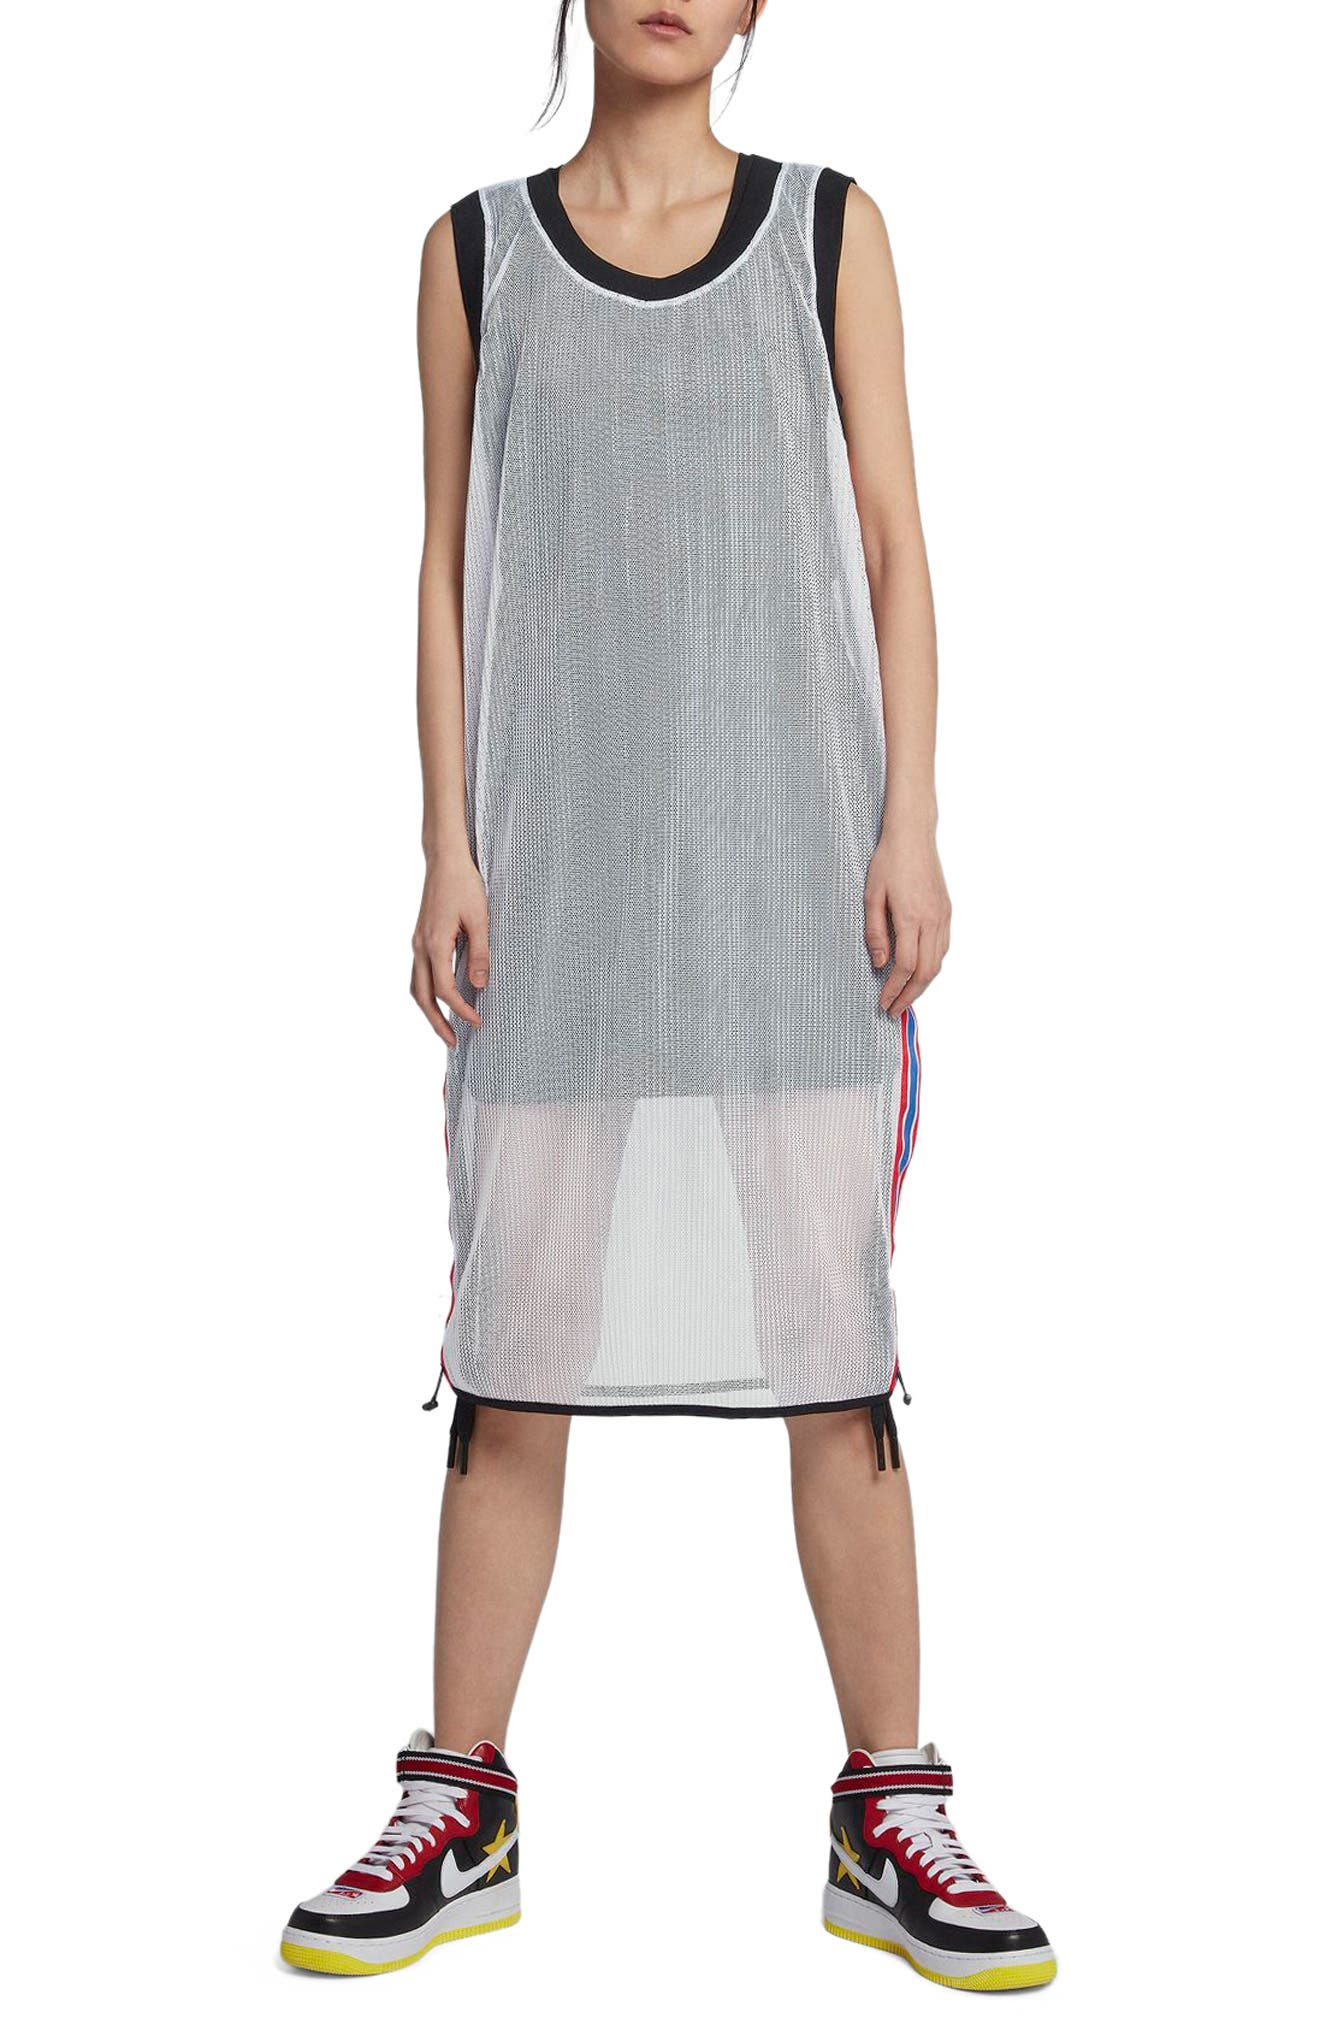 NikeLab x RT Mesh Jersey Dress,                             Main thumbnail 1, color,                             White